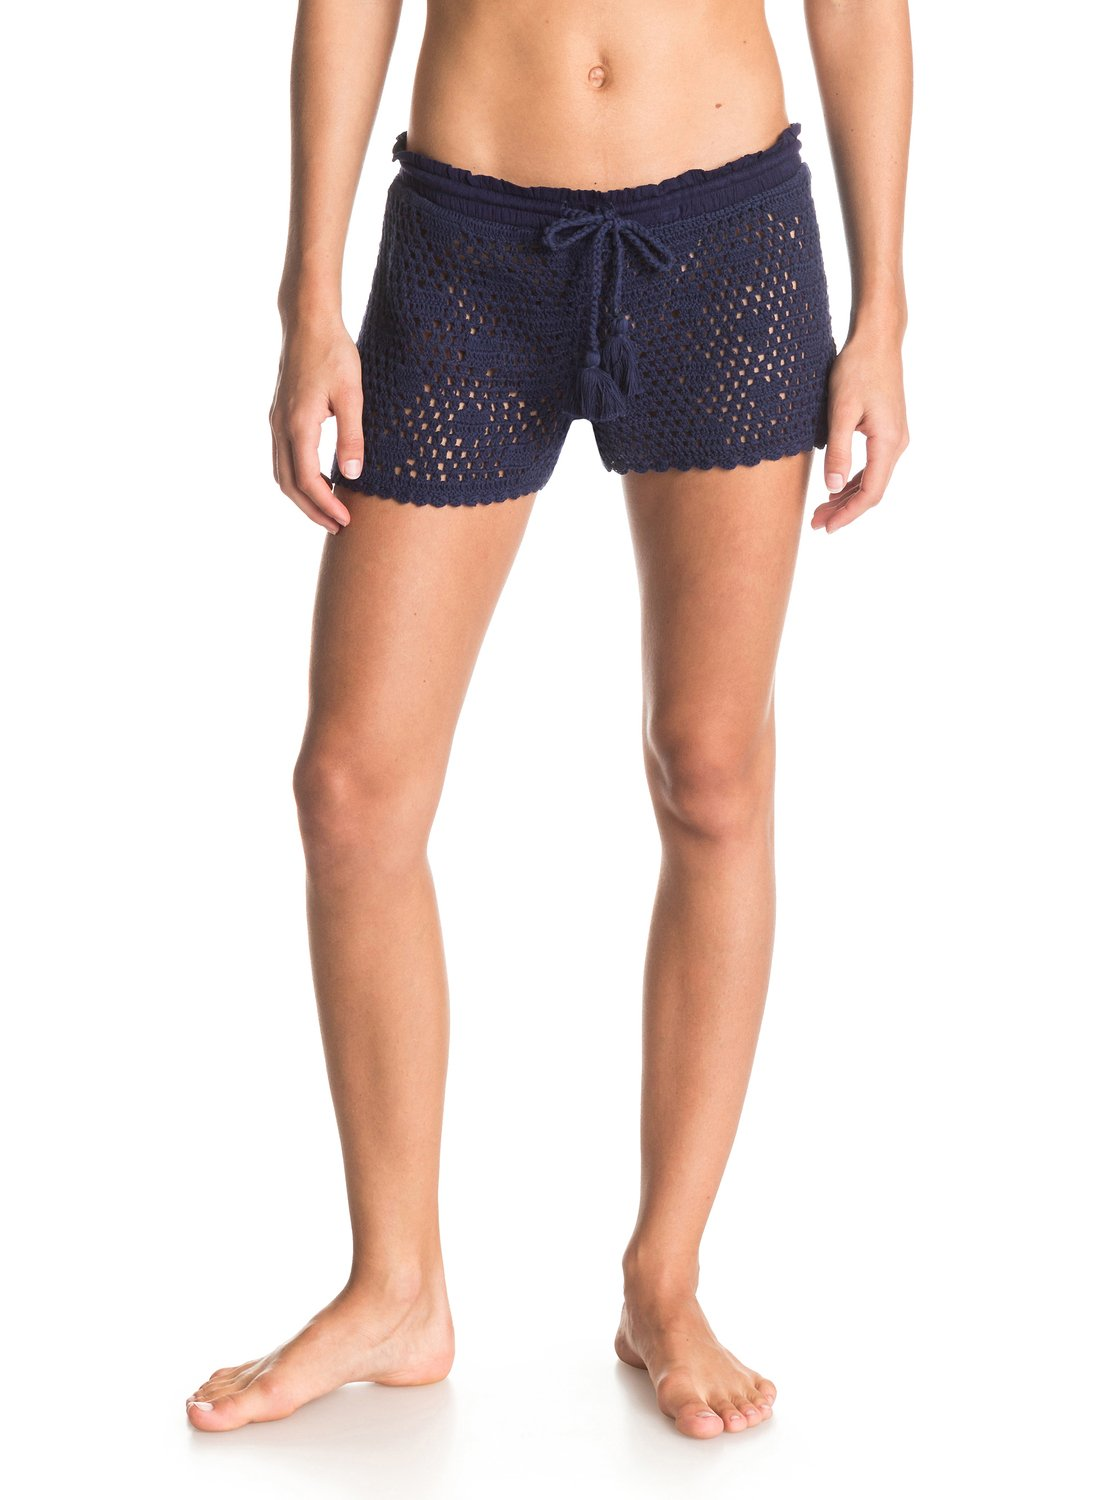 Sand Dollar Short - RoxySand Dollar Short � ������� �� ��������� ��������� Roxy �����-���� 2015. ��������������: ������� �������, ������-�����, ����� ��� ��������. �������������: ����� �� ����������� ��� 5 ��, ������ � 100% ������.<br>